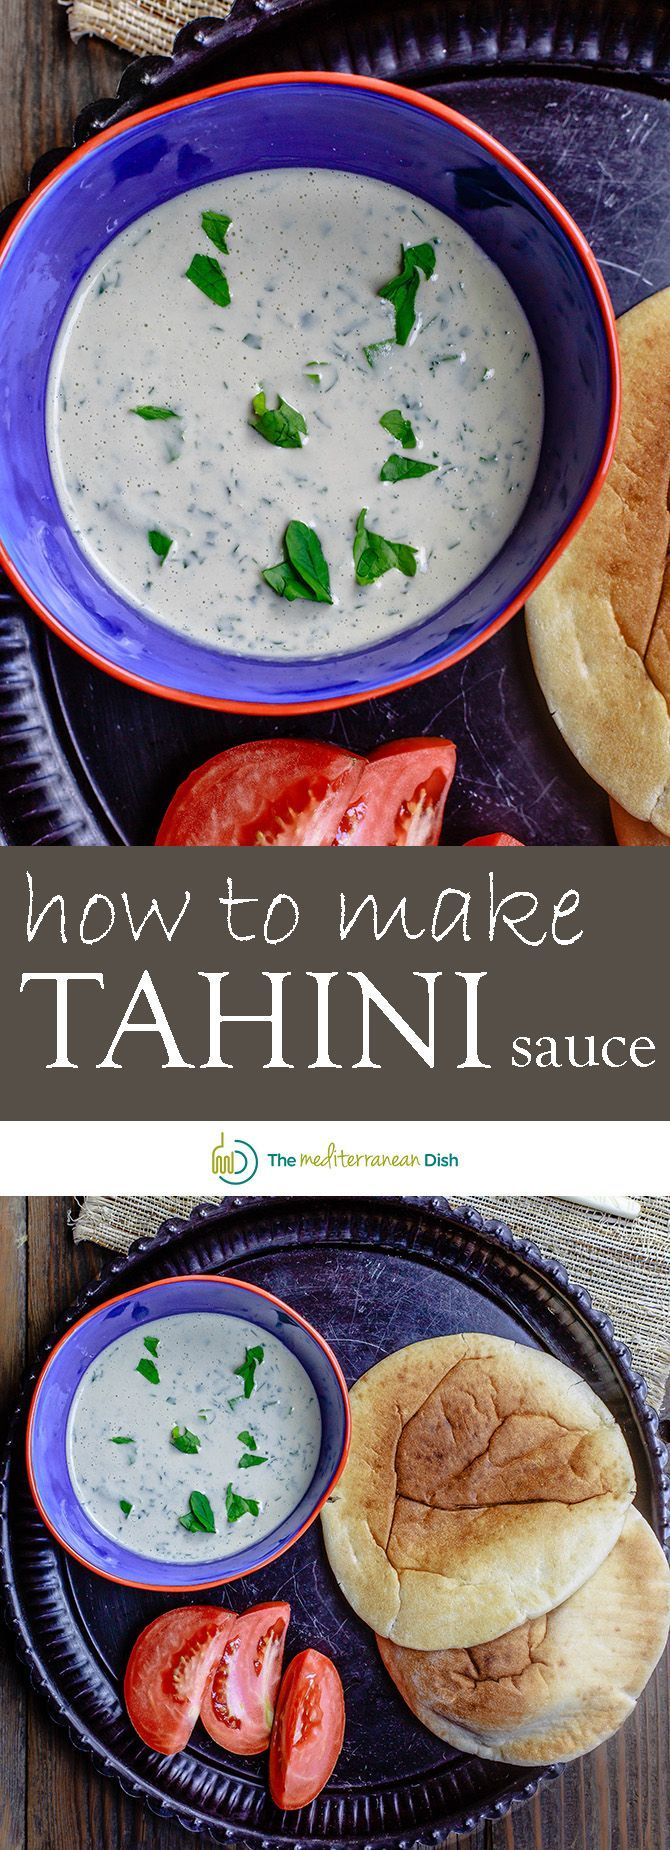 Tahini Sauce Recipe (How to Make Tahini) | The Mediterranean Dish. The best Middle Eastern tahini sauce recipe with garlic, lime juice, and fresh parsley. Easy recipe. A versatile sauce for sandwiches, salad, or as a dip with your meats and fish. See it o (vegan dip tahini)